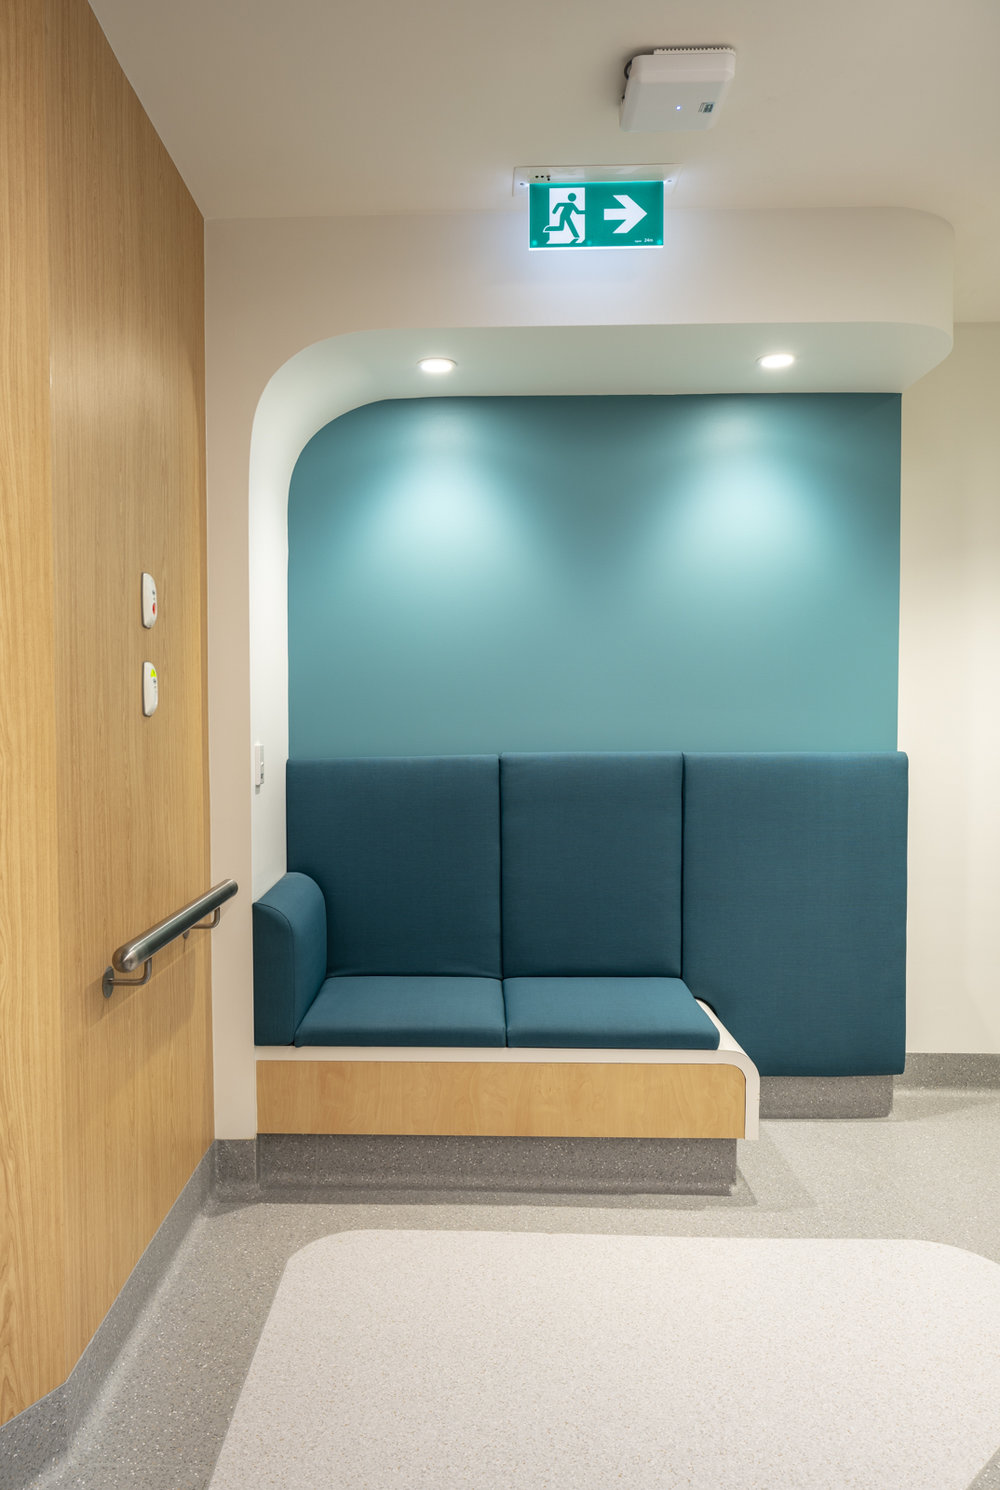 Alchemy Construct RMH Stroke Unit Completed January 2019  _A736195.jpg